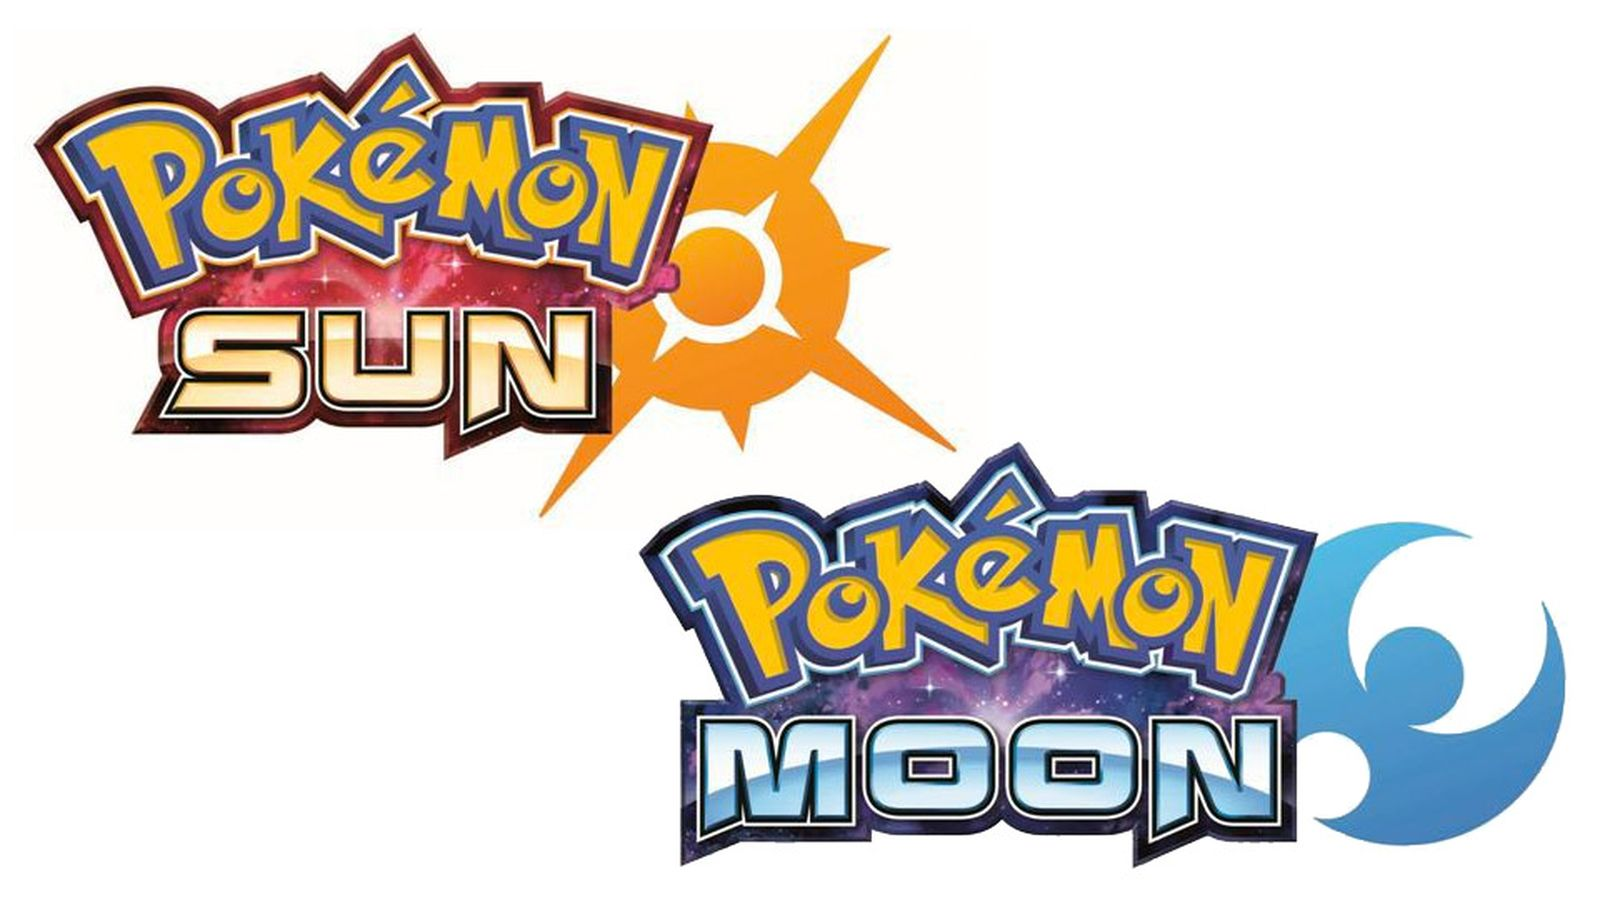 pokemon sun pokemon moon logo